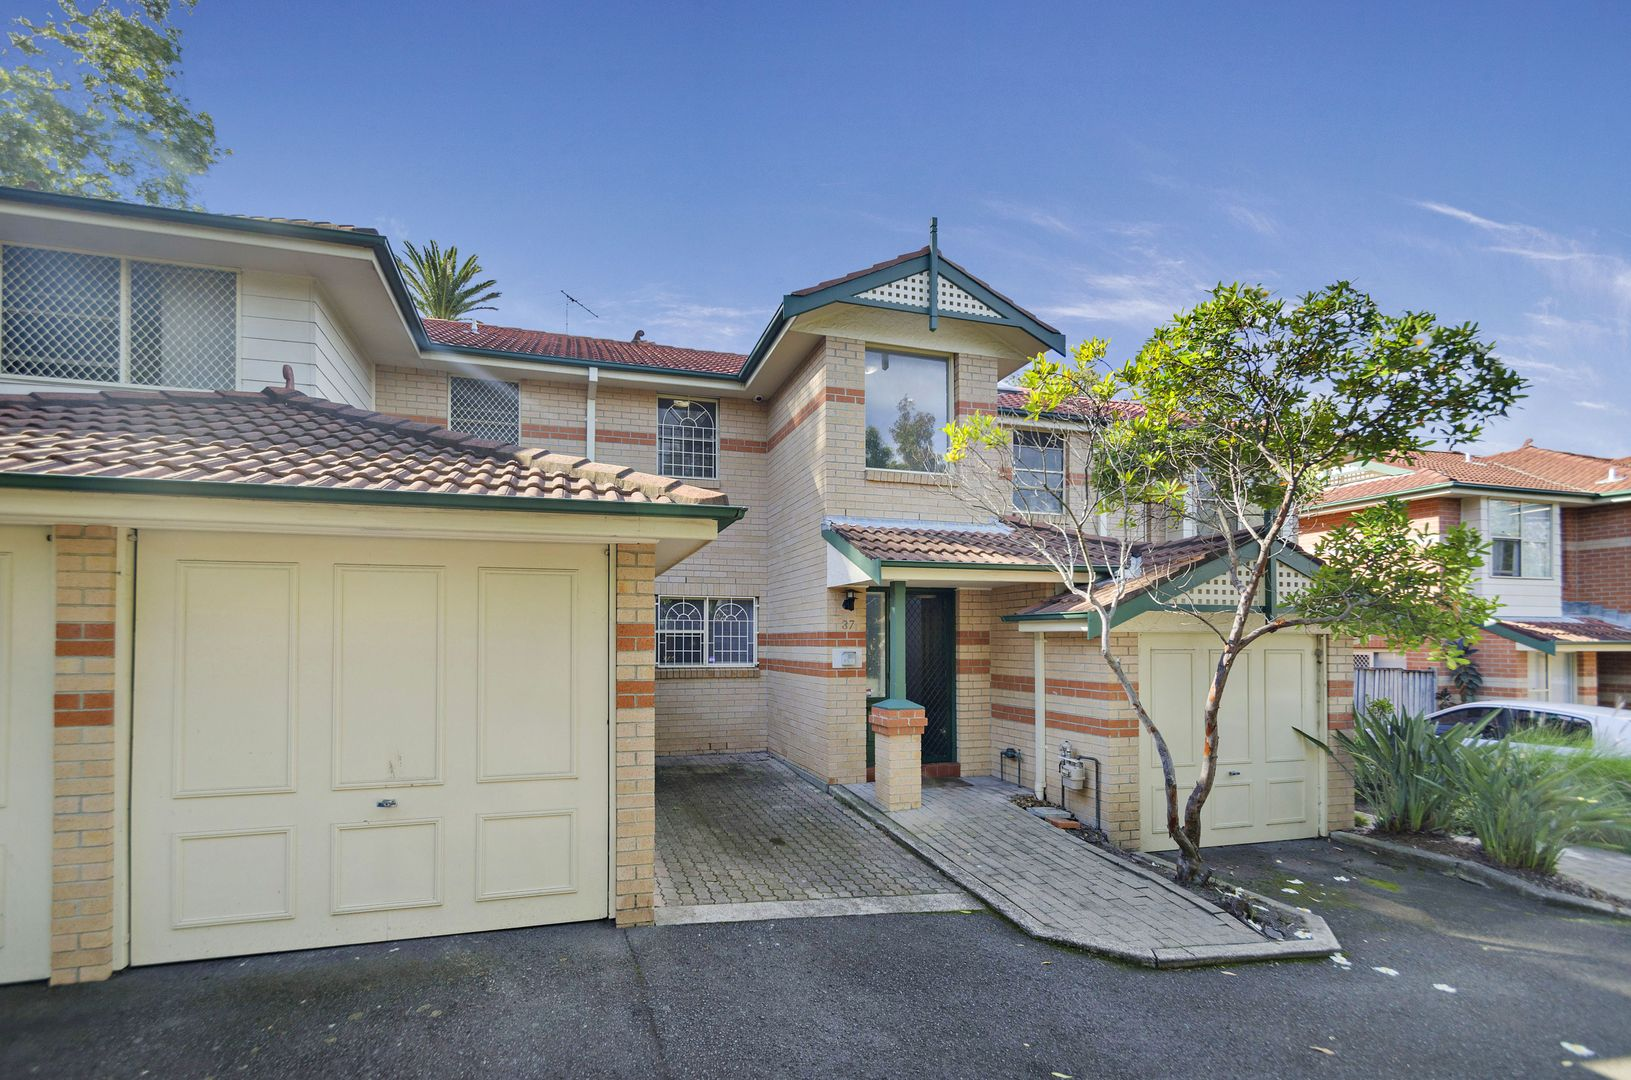 37/1 Bennett Avenue, Strathfield South NSW 2136, Image 0